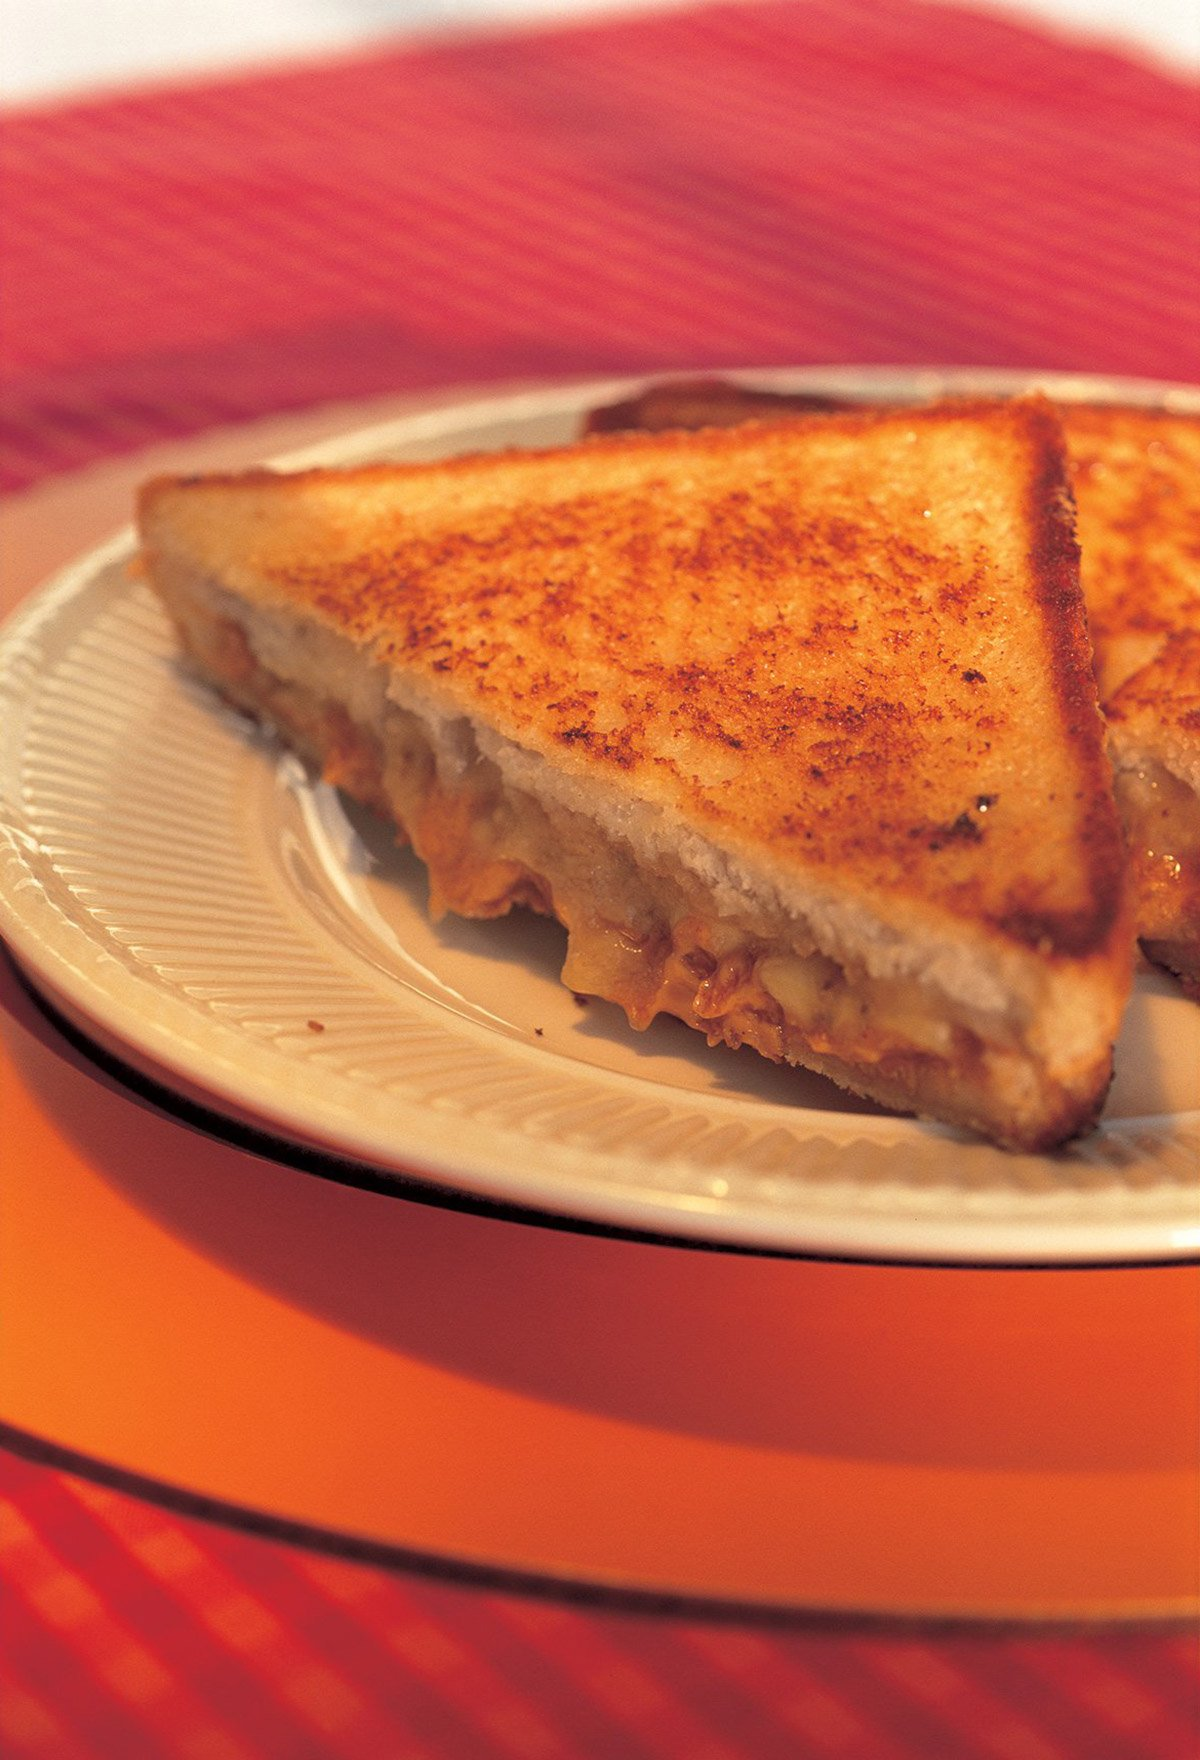 Elvis Presley S Fried Peanut Butter And Banana Sandwich Nigella S Recipes Nigella Lawson